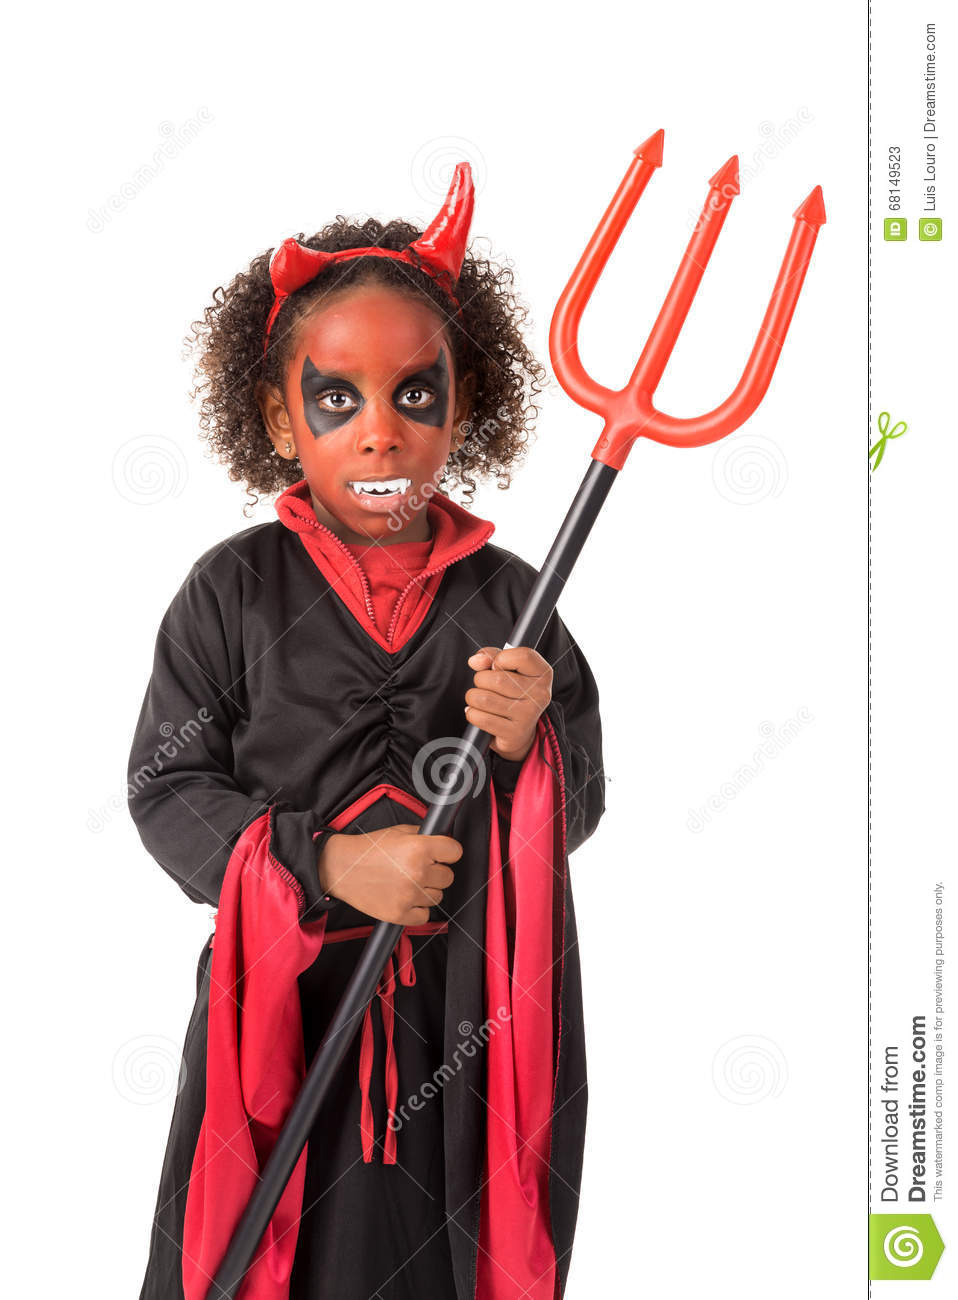 kid in halloween costume stock image. image of dress - 68149523